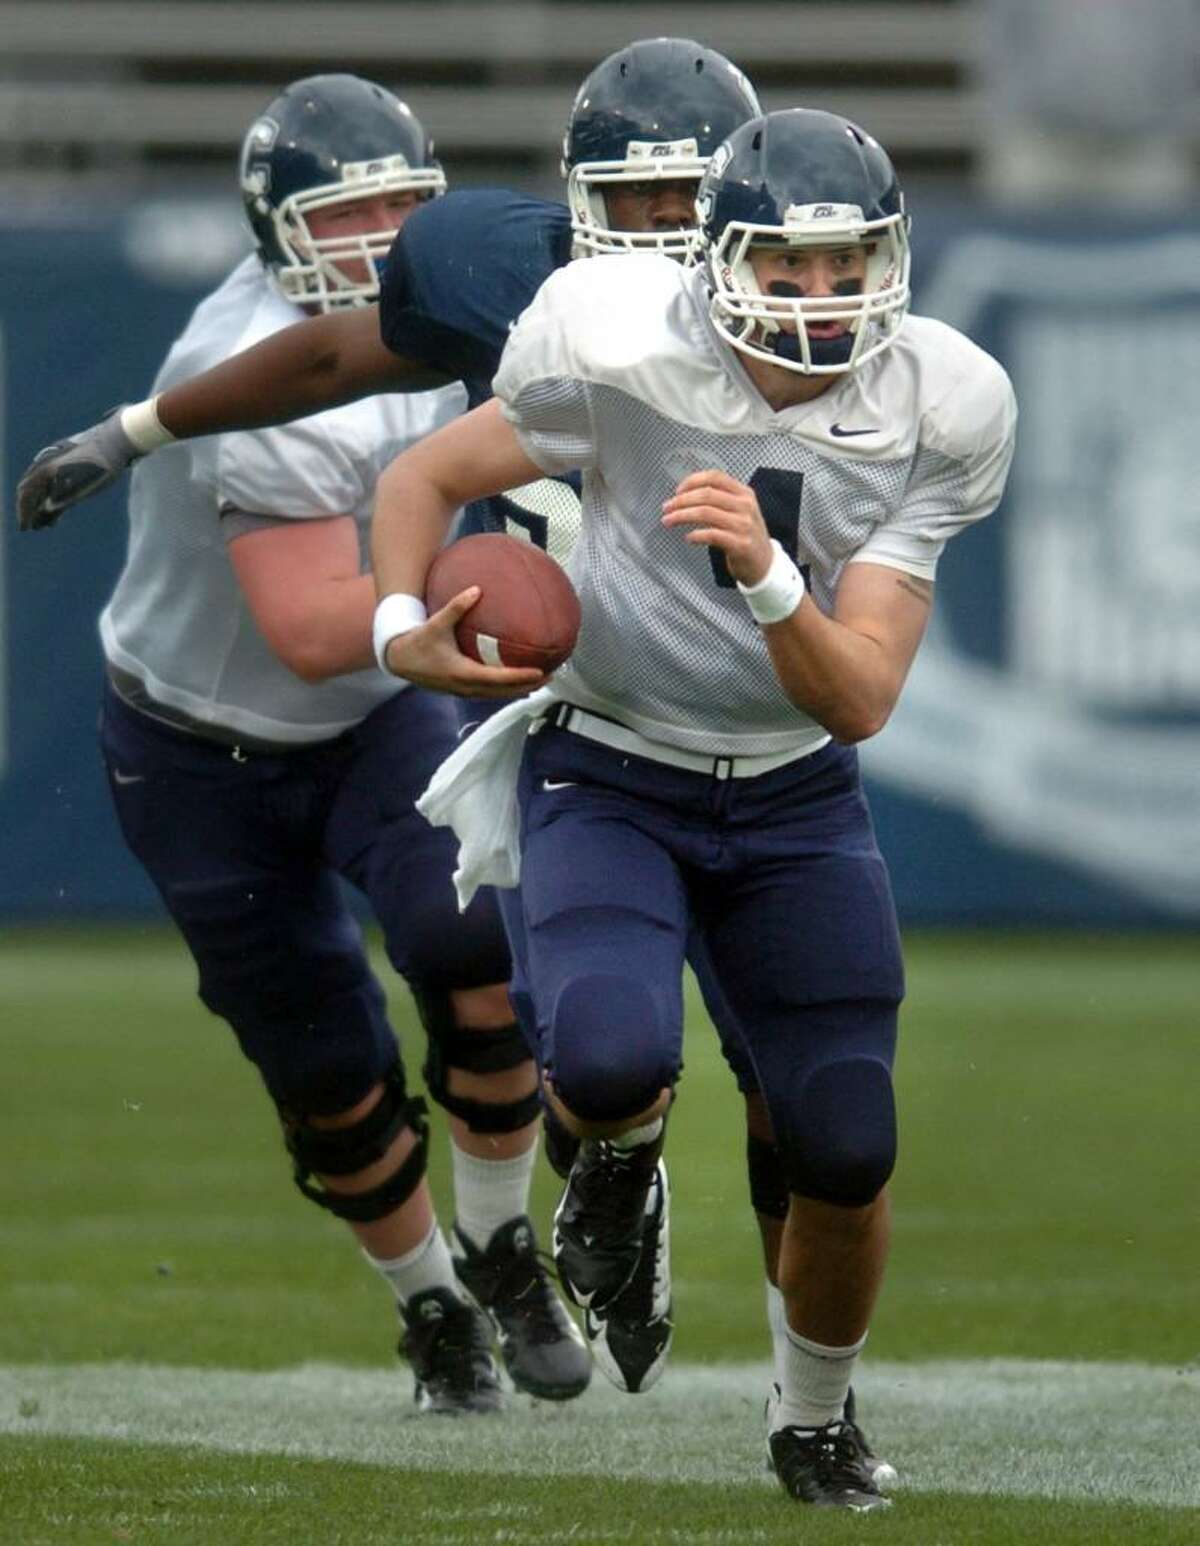 White team quarterback Michael Box carries the ball during the UConn spring football game at Rentschler Field in East Hartford Saturday Apr. 17, 2010.